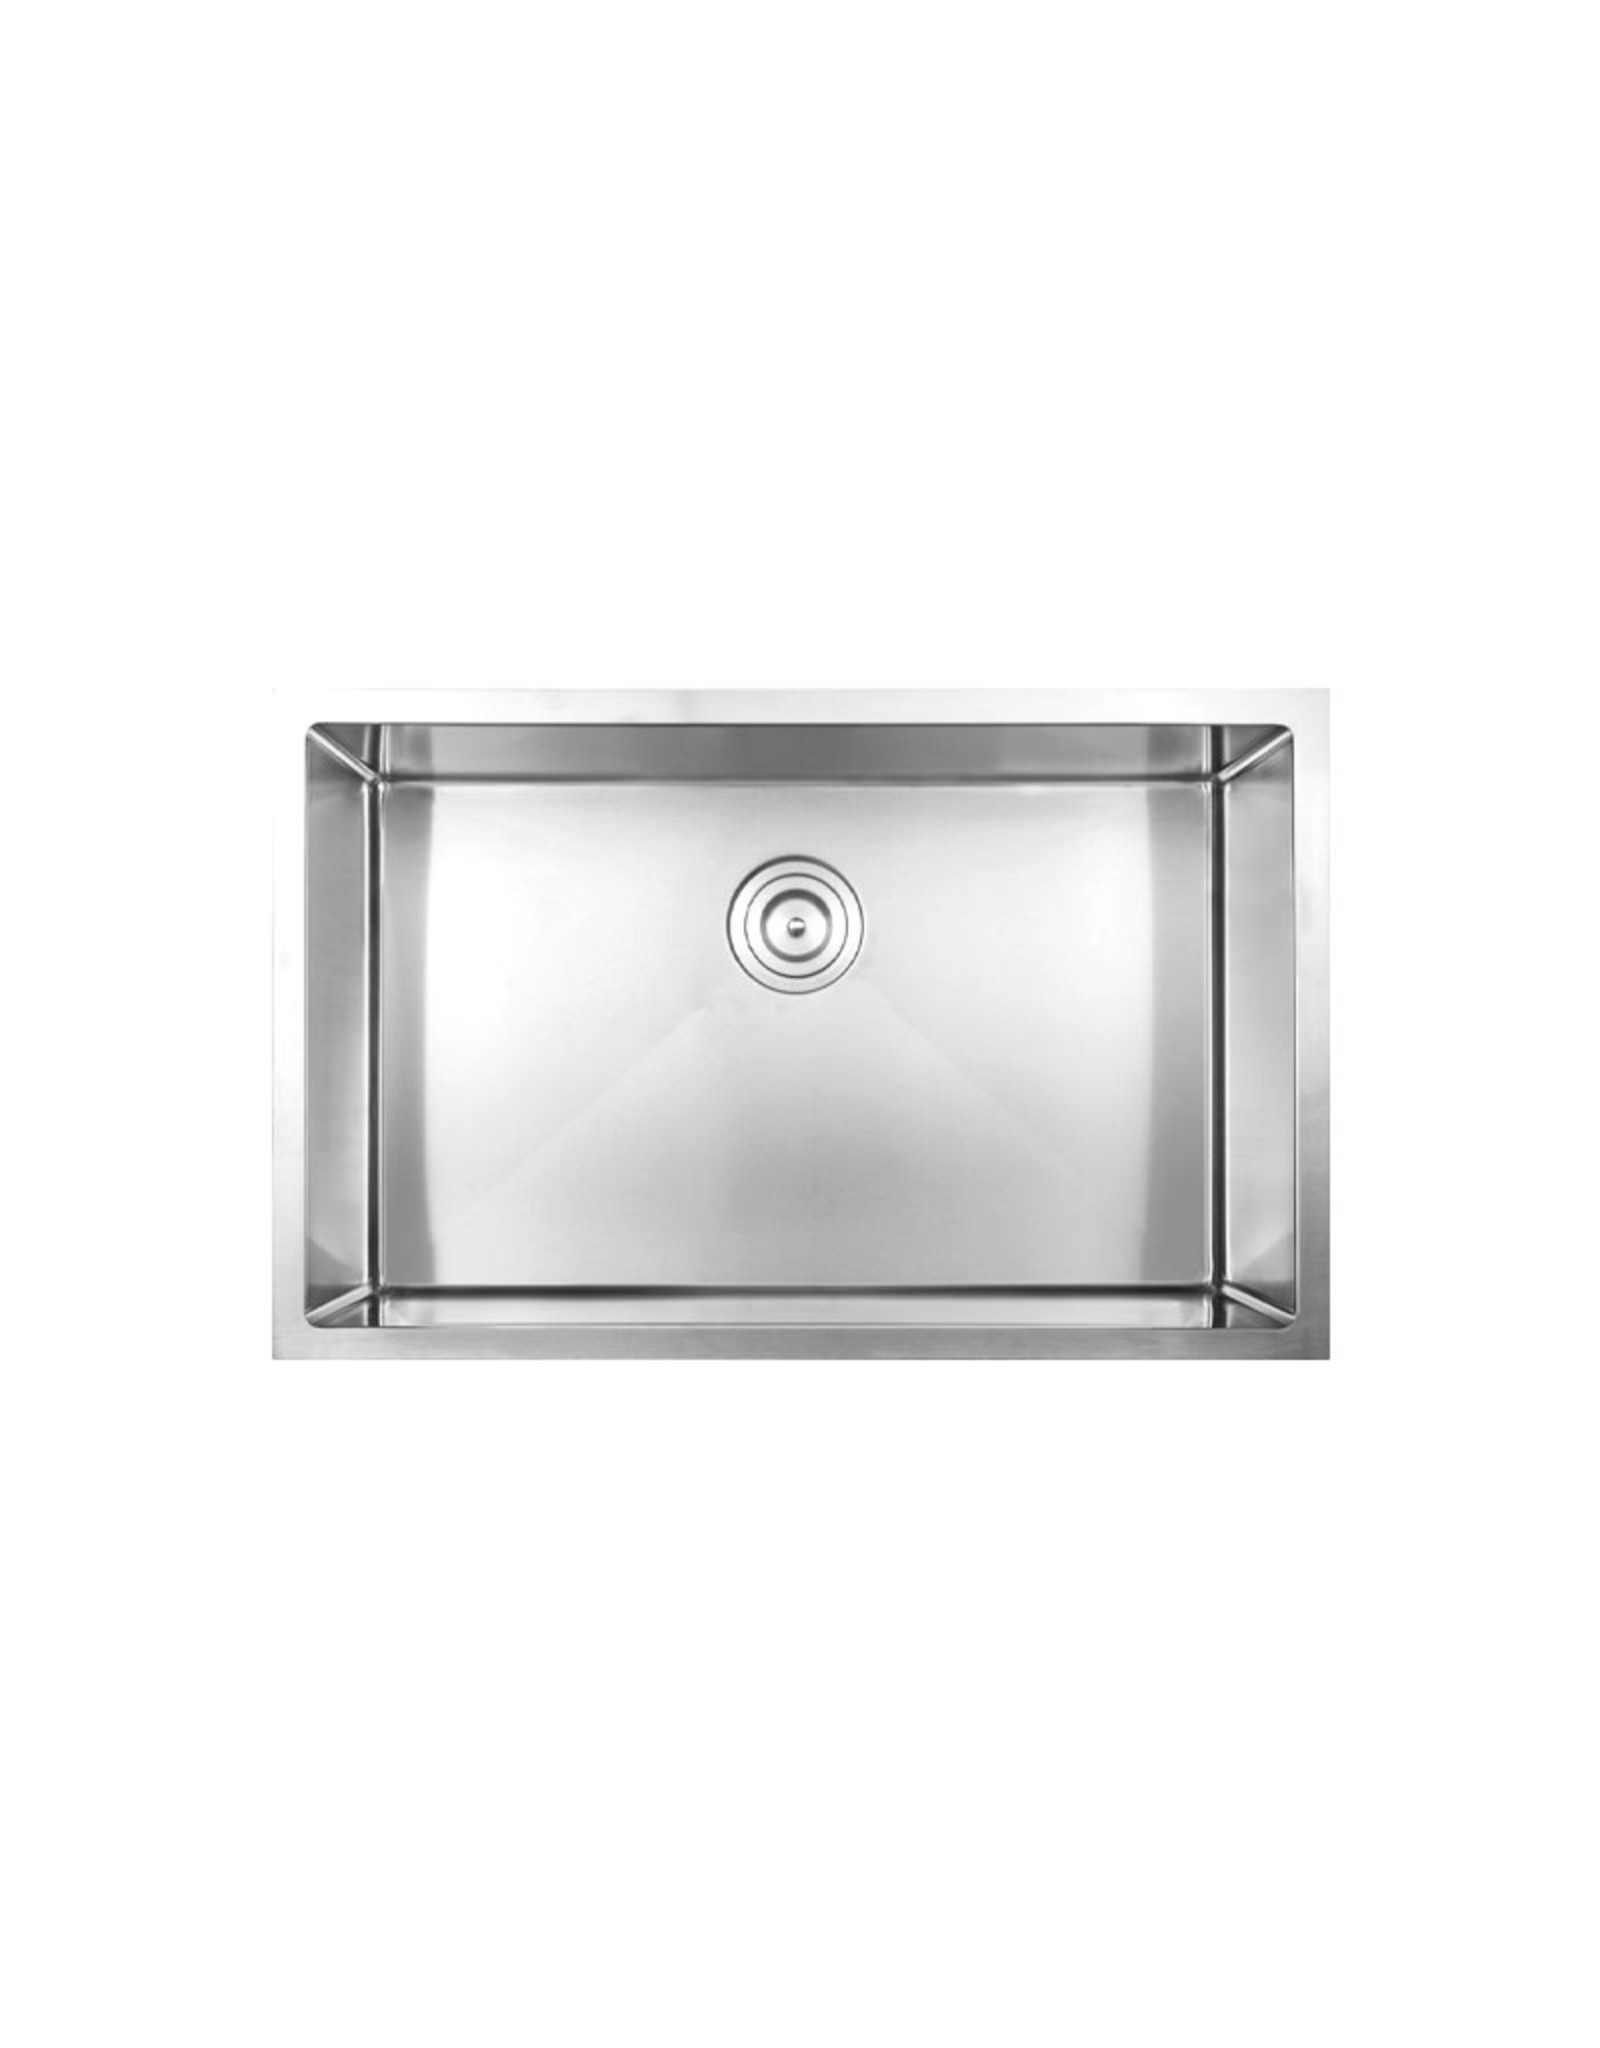 "Vogt Graz 16R Undermount Kitchen Sink 30"" x 18"" x 10"""